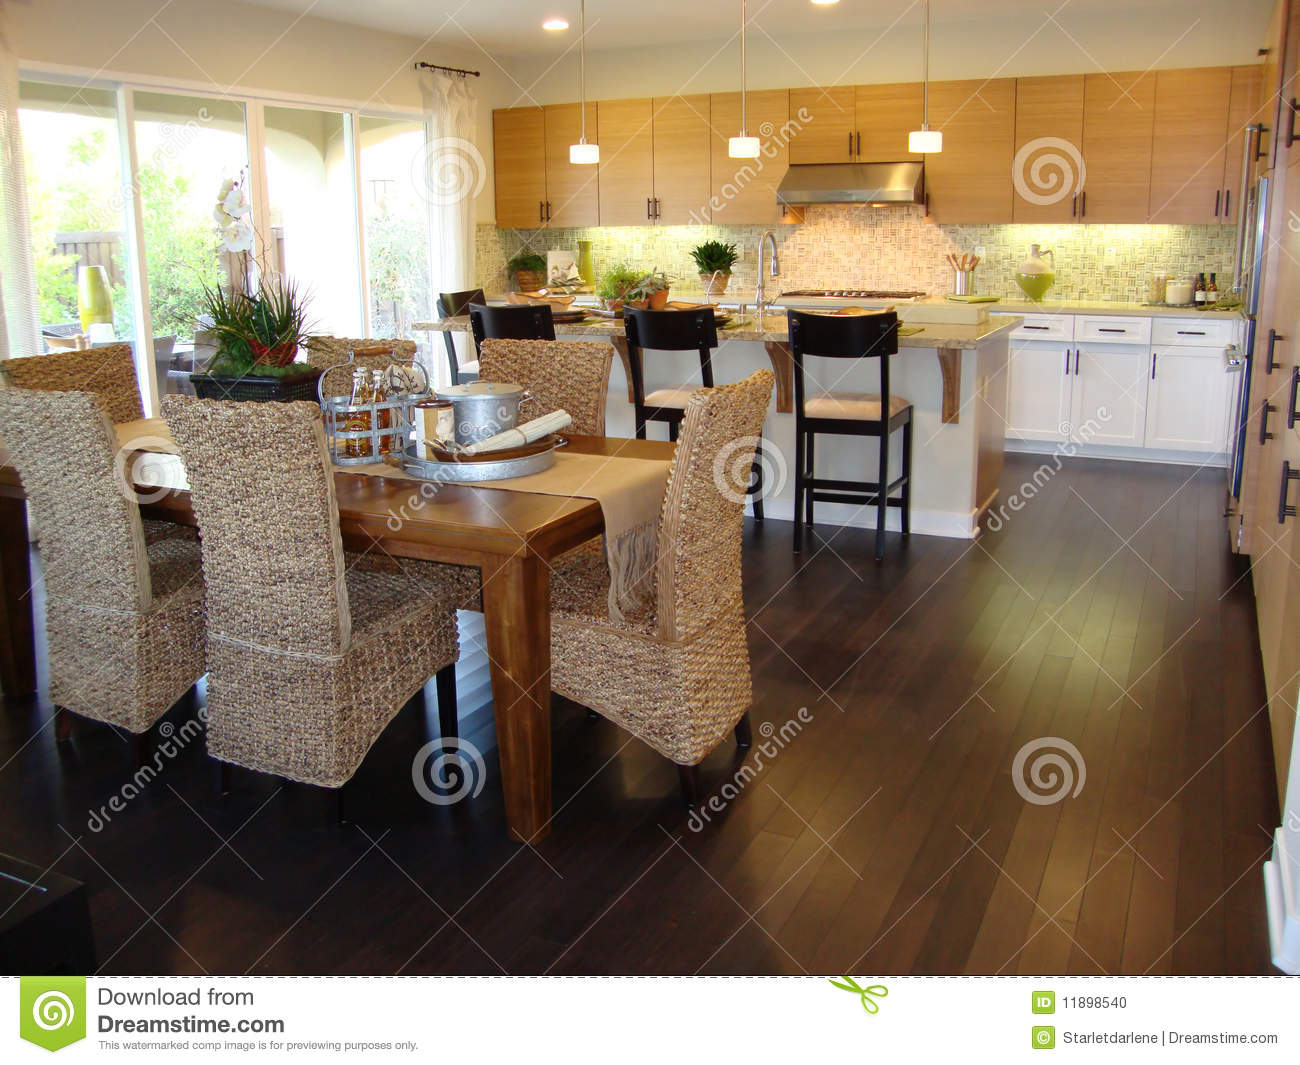 Excellent Beautiful Kitchens and Dining Room 1300 x 1065 · 191 kB · jpeg